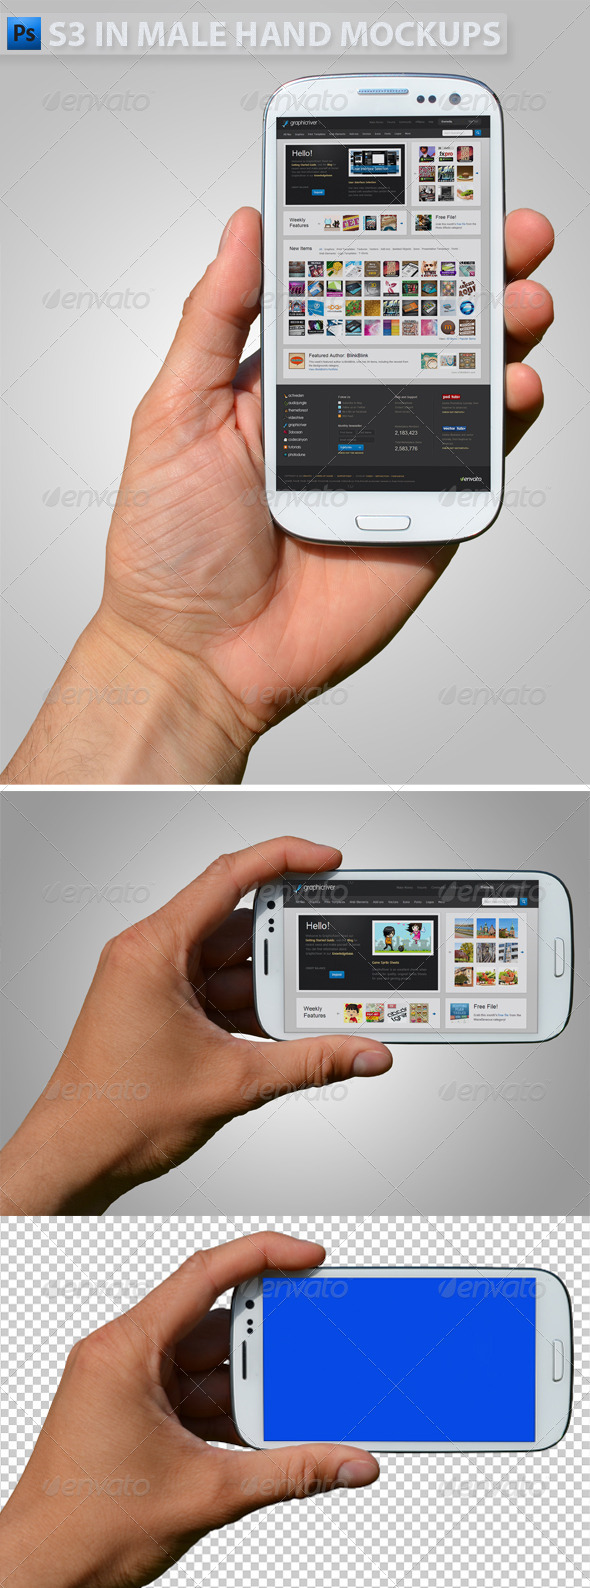 GraphicRiver S3 in Hand Mock-ups 4958536